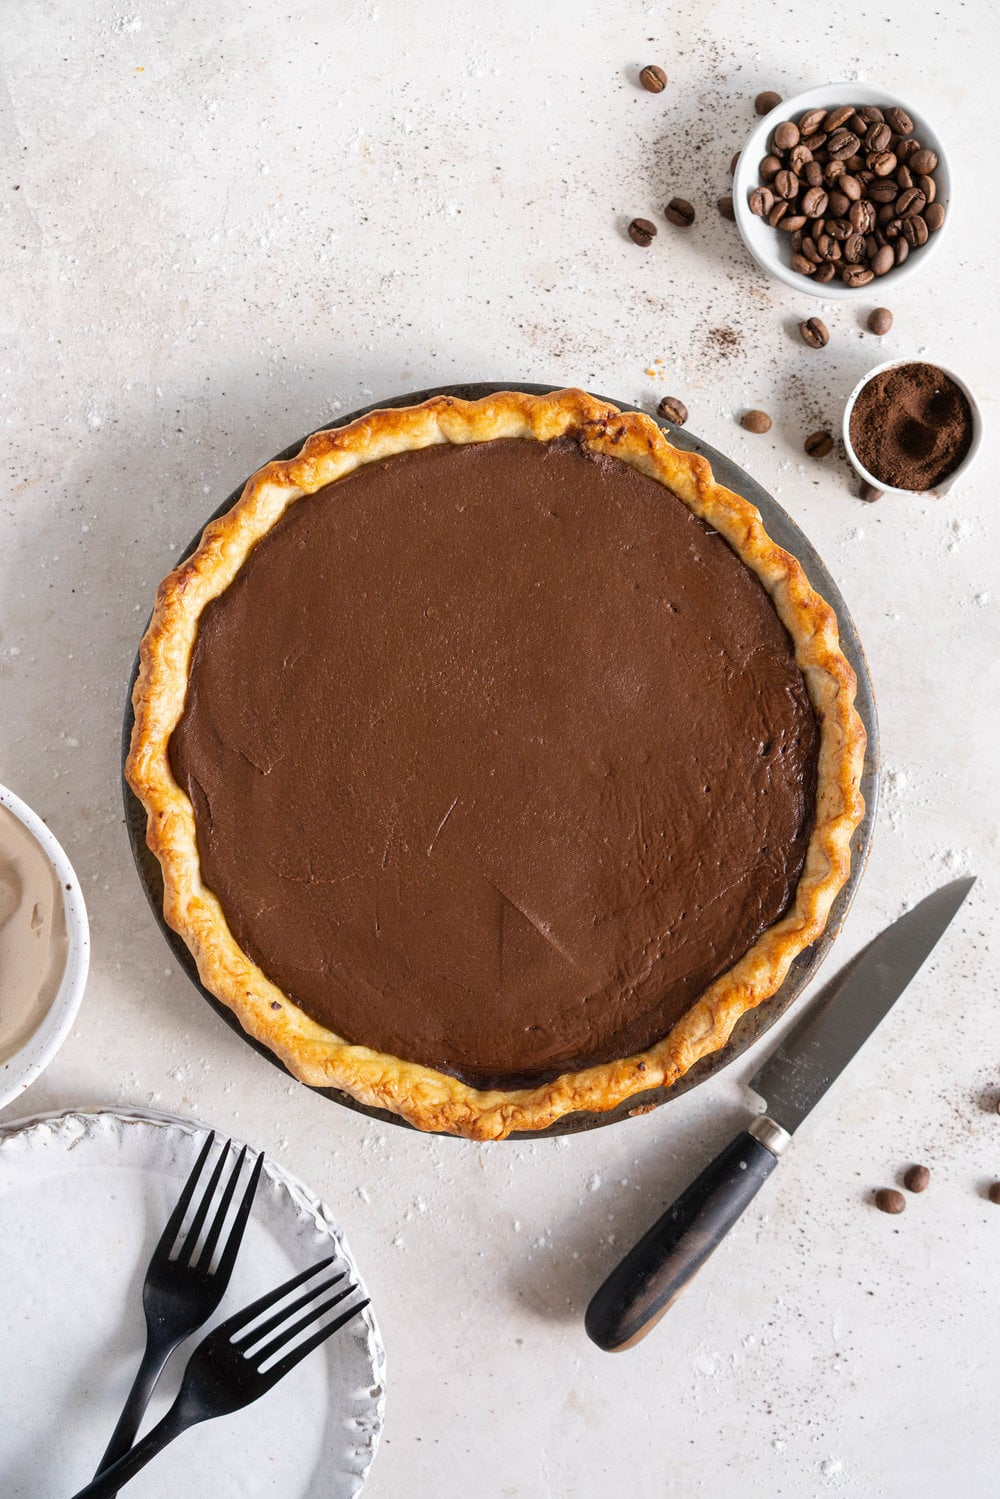 Mocha Cream pie with espresso whipped cream - a crispy blind baked pie crust is filled with a mocha pudding filling and topped with clouds of espresso flavoured whipped cream, before being finished off with coffee beans and espresso powder. This pie is super simple to make and is a coffee lover's dream. #mochapie #creampie #mocha #cloudykitchenpie